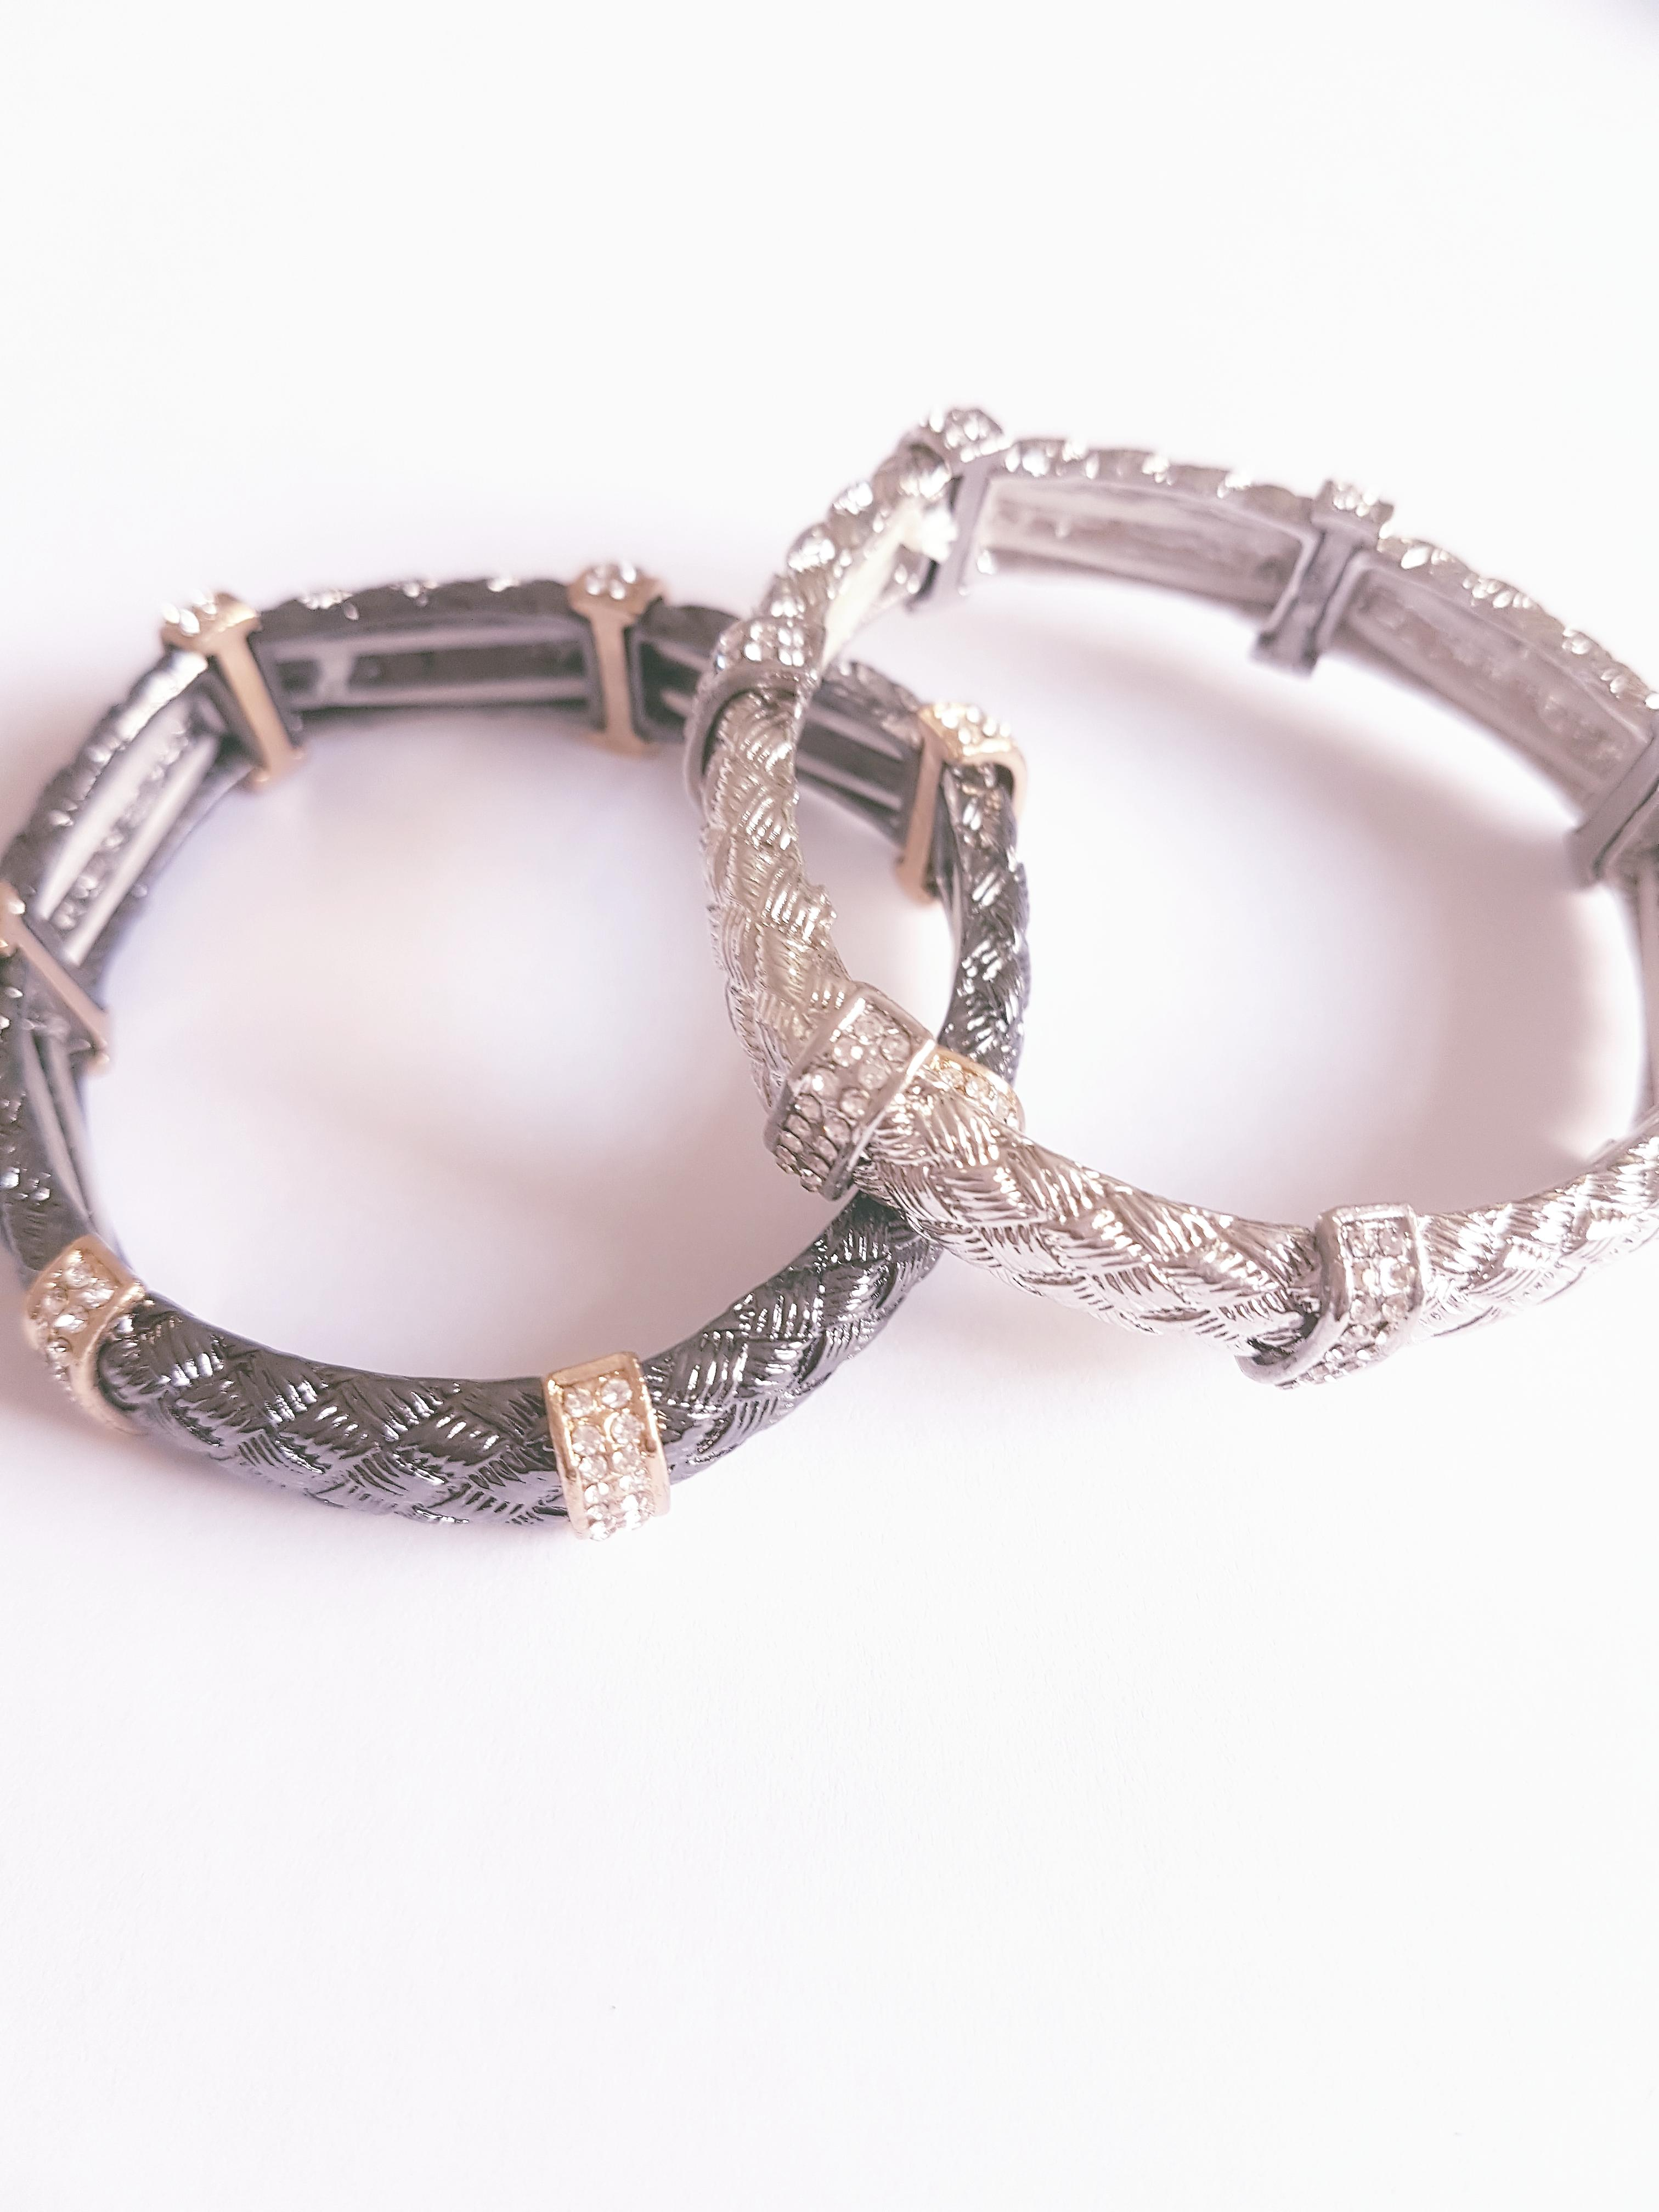 Fashionable Crystal Diamonte Bracelet - Silver